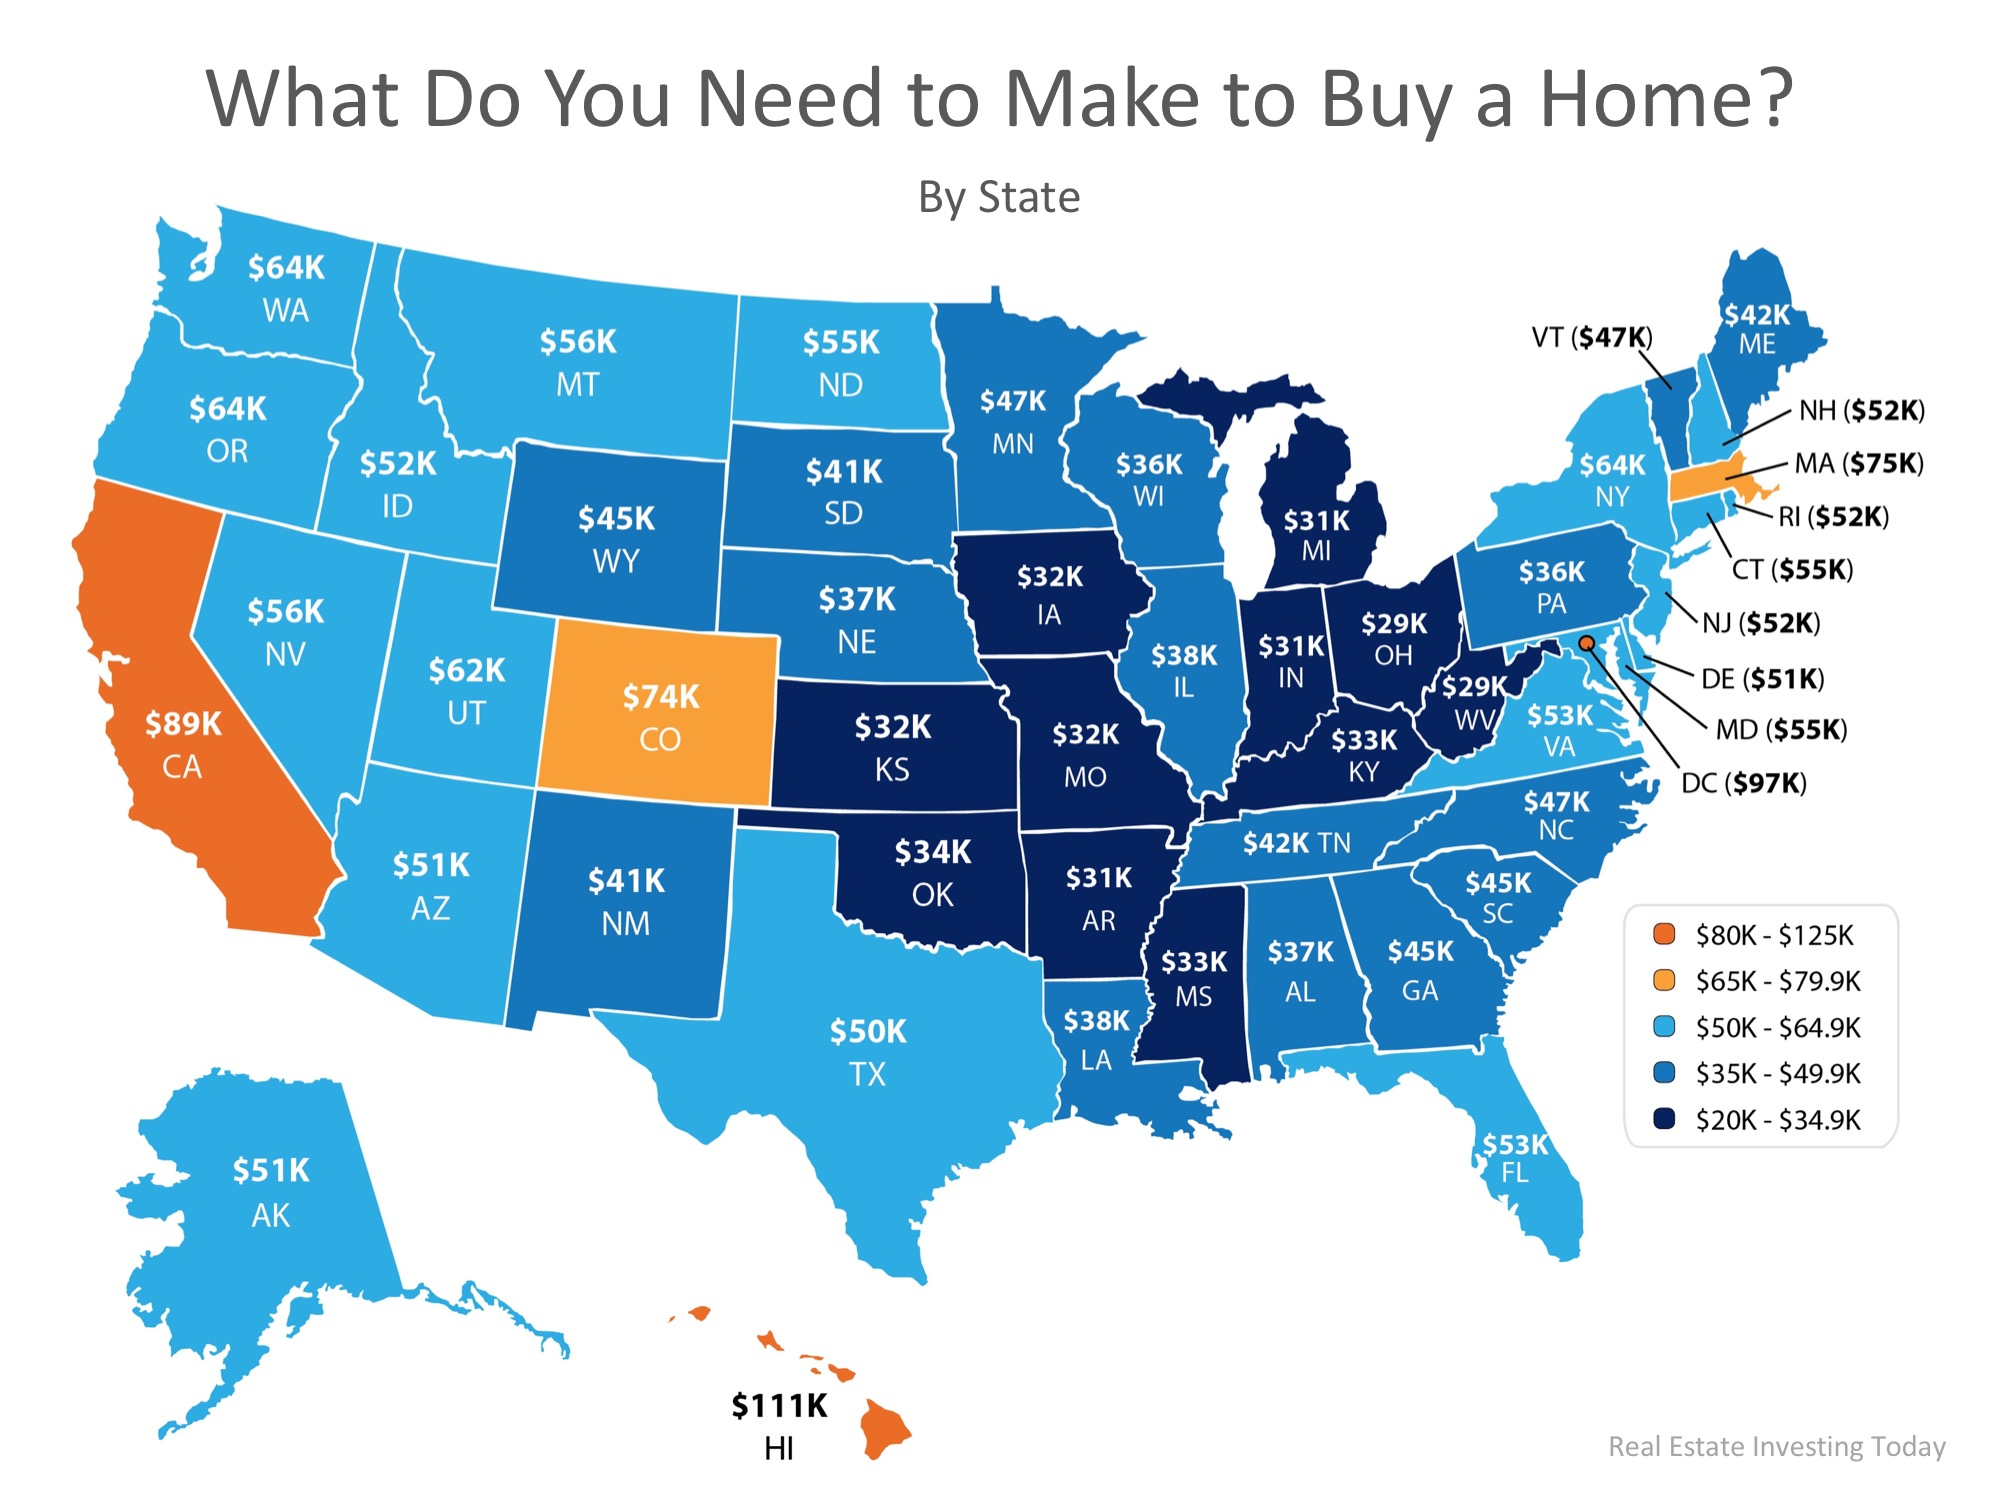 How Much Do You Need to Make to Buy a Home in Your State?   Bridge Builders